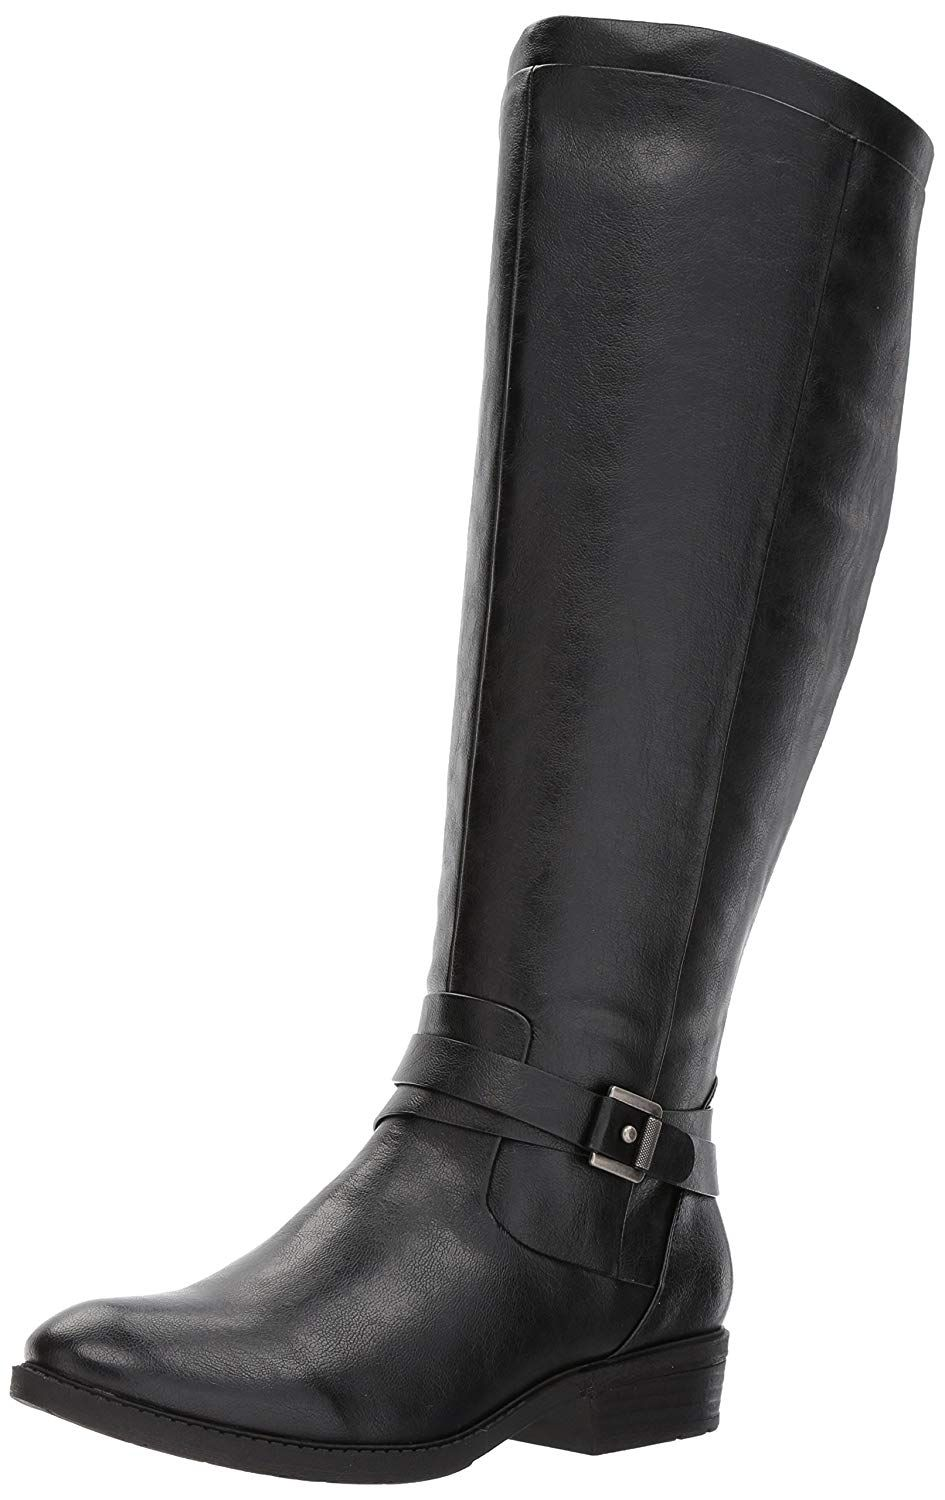 596b7d21defb VOCOSI Women s Classic Side-Zip High Heels Leather Riding Boots Pointy Toe  Knee-High Dr…